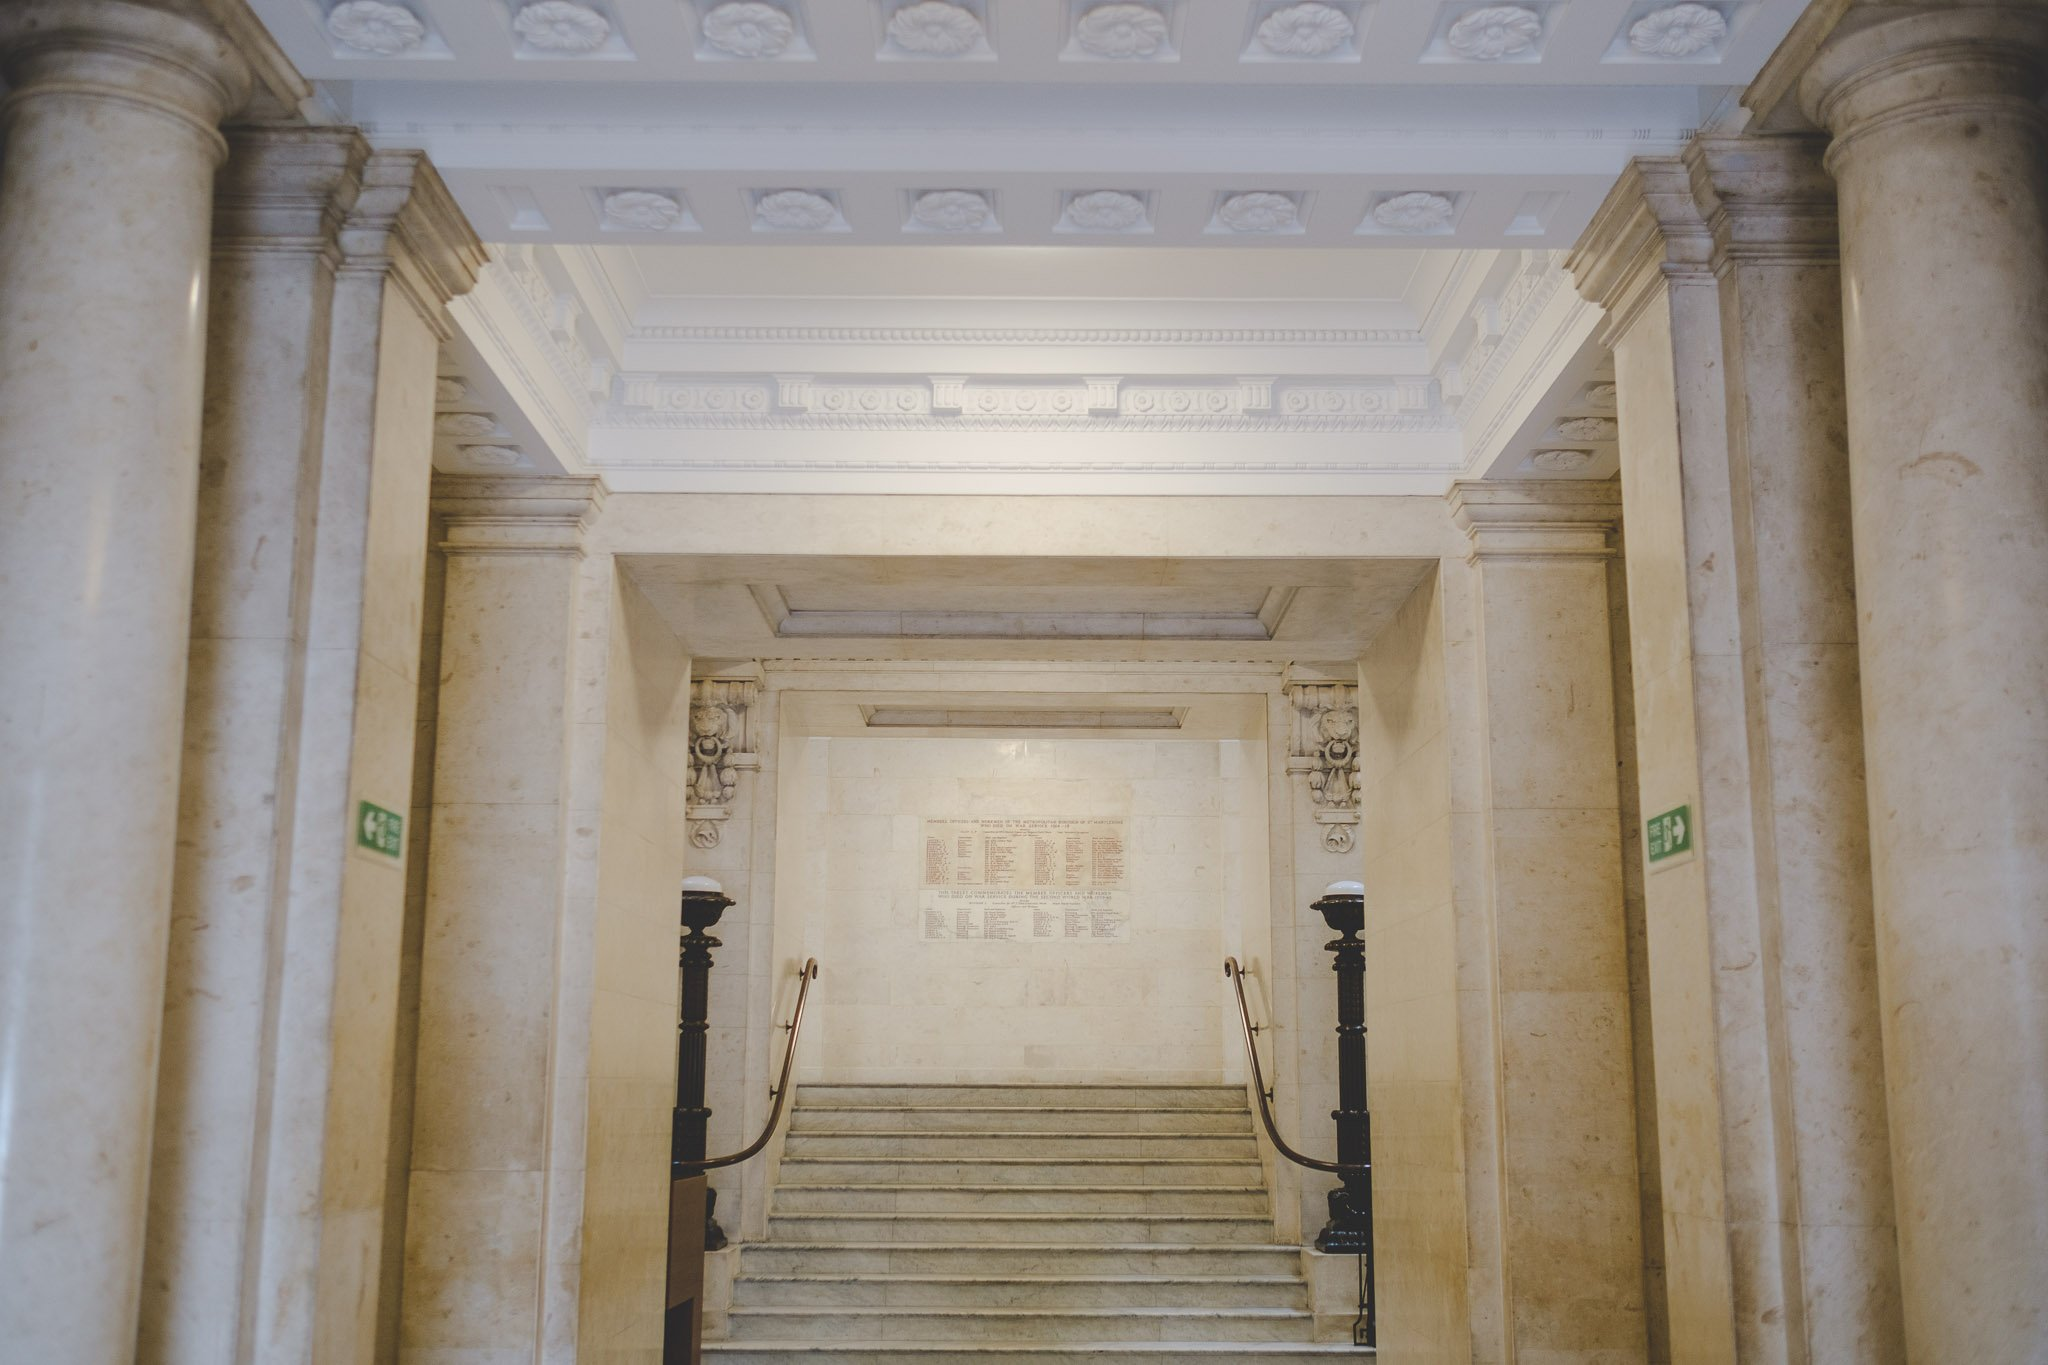 The interior staircase of the Old Marylebone Town Hall London